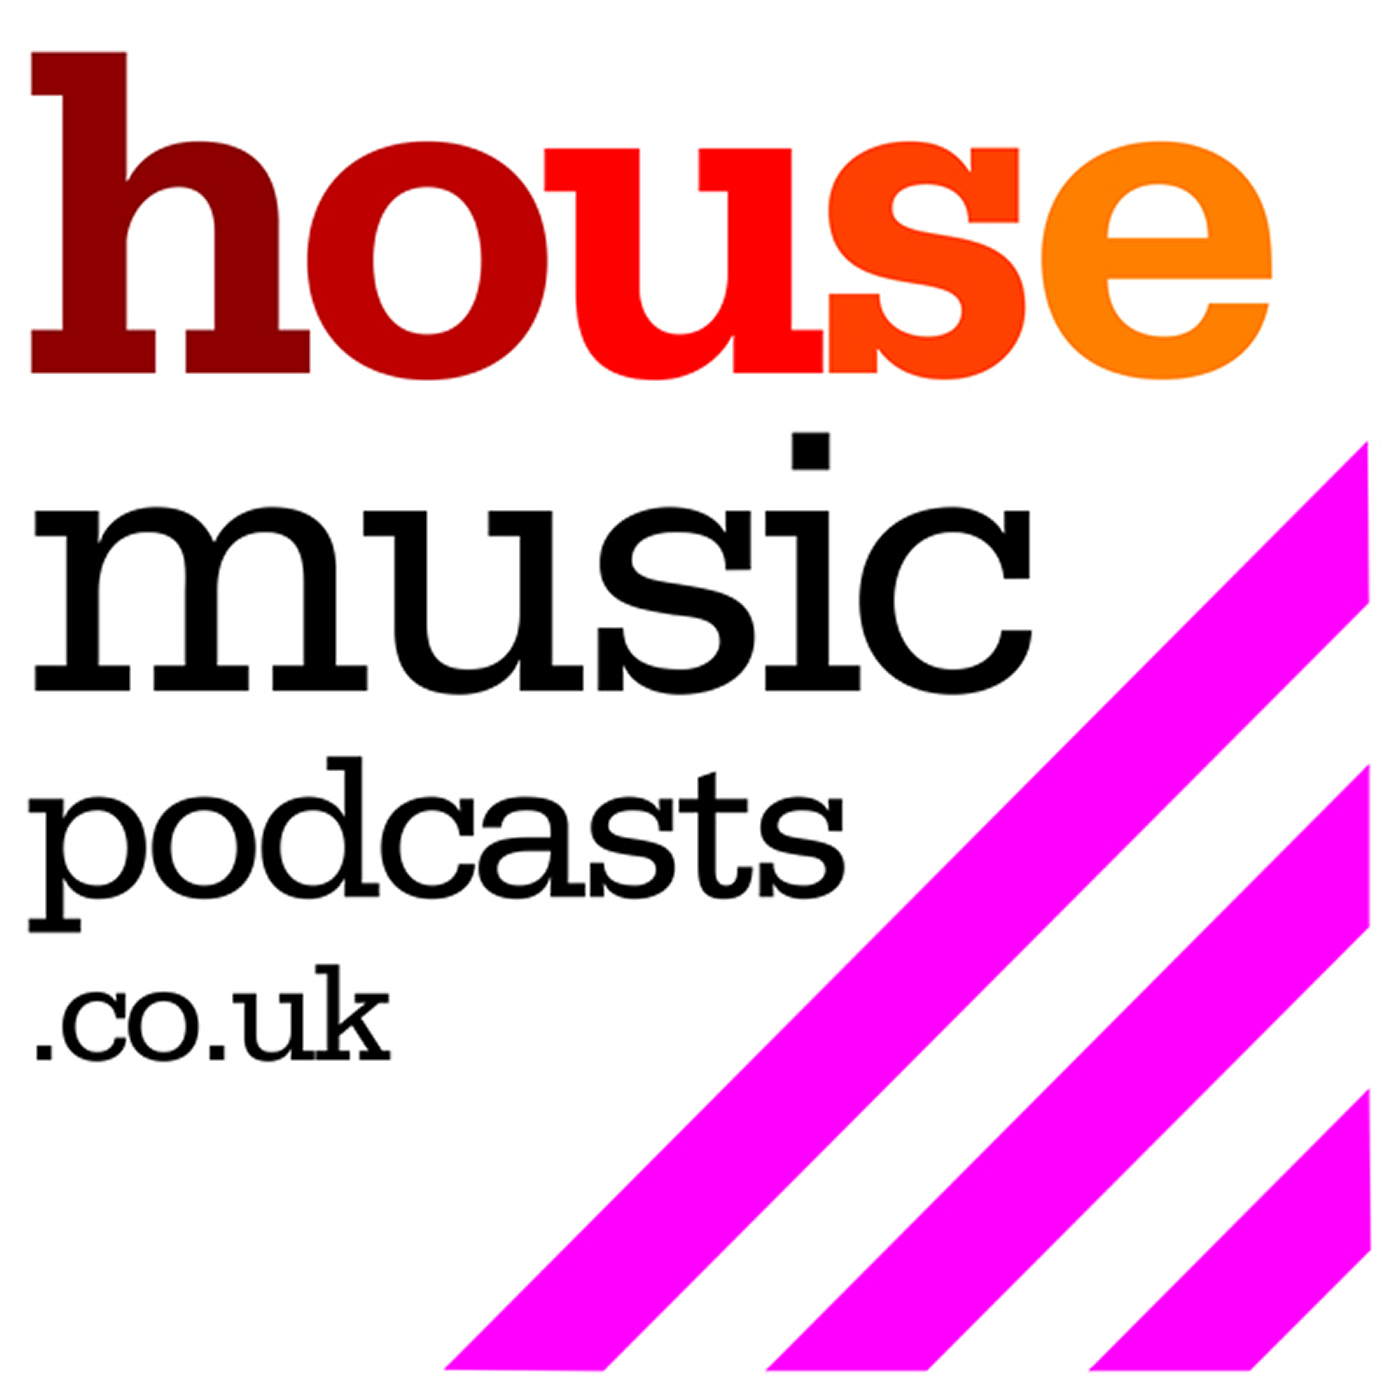 Tom Upton – House Music Podcasts